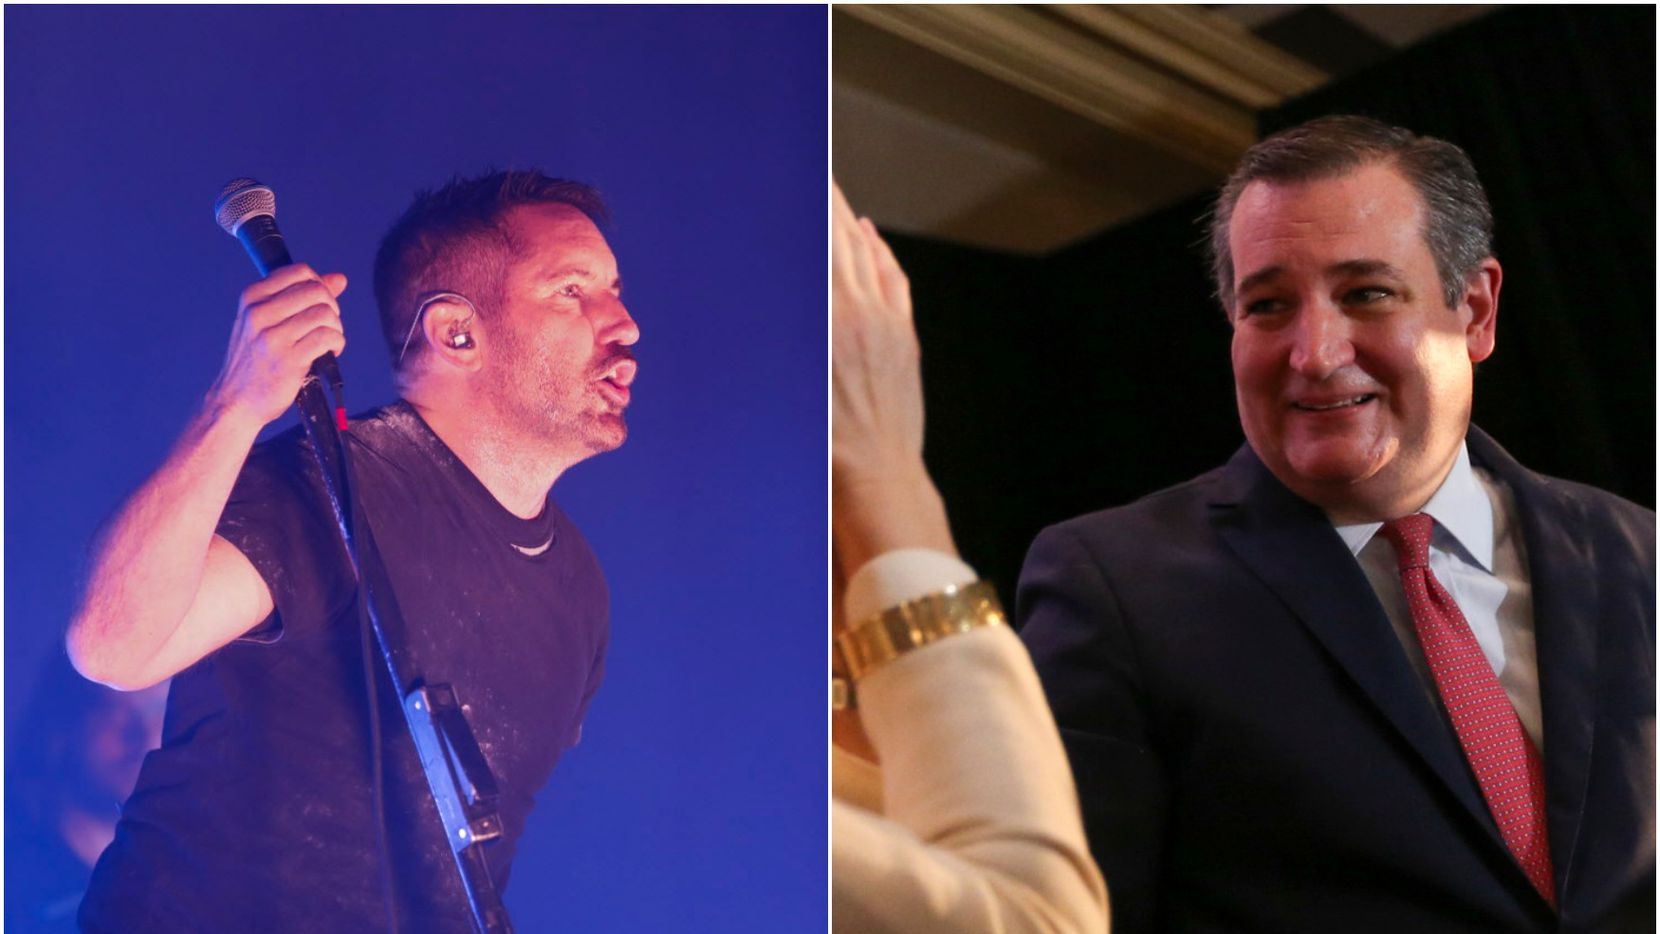 """At Nine Inch Nails' Irving show, lead singer Trent Reznor (left) joked that he told Ted Cruz (right) to """"[expletive] off"""" when the senator asked for backstage passes."""